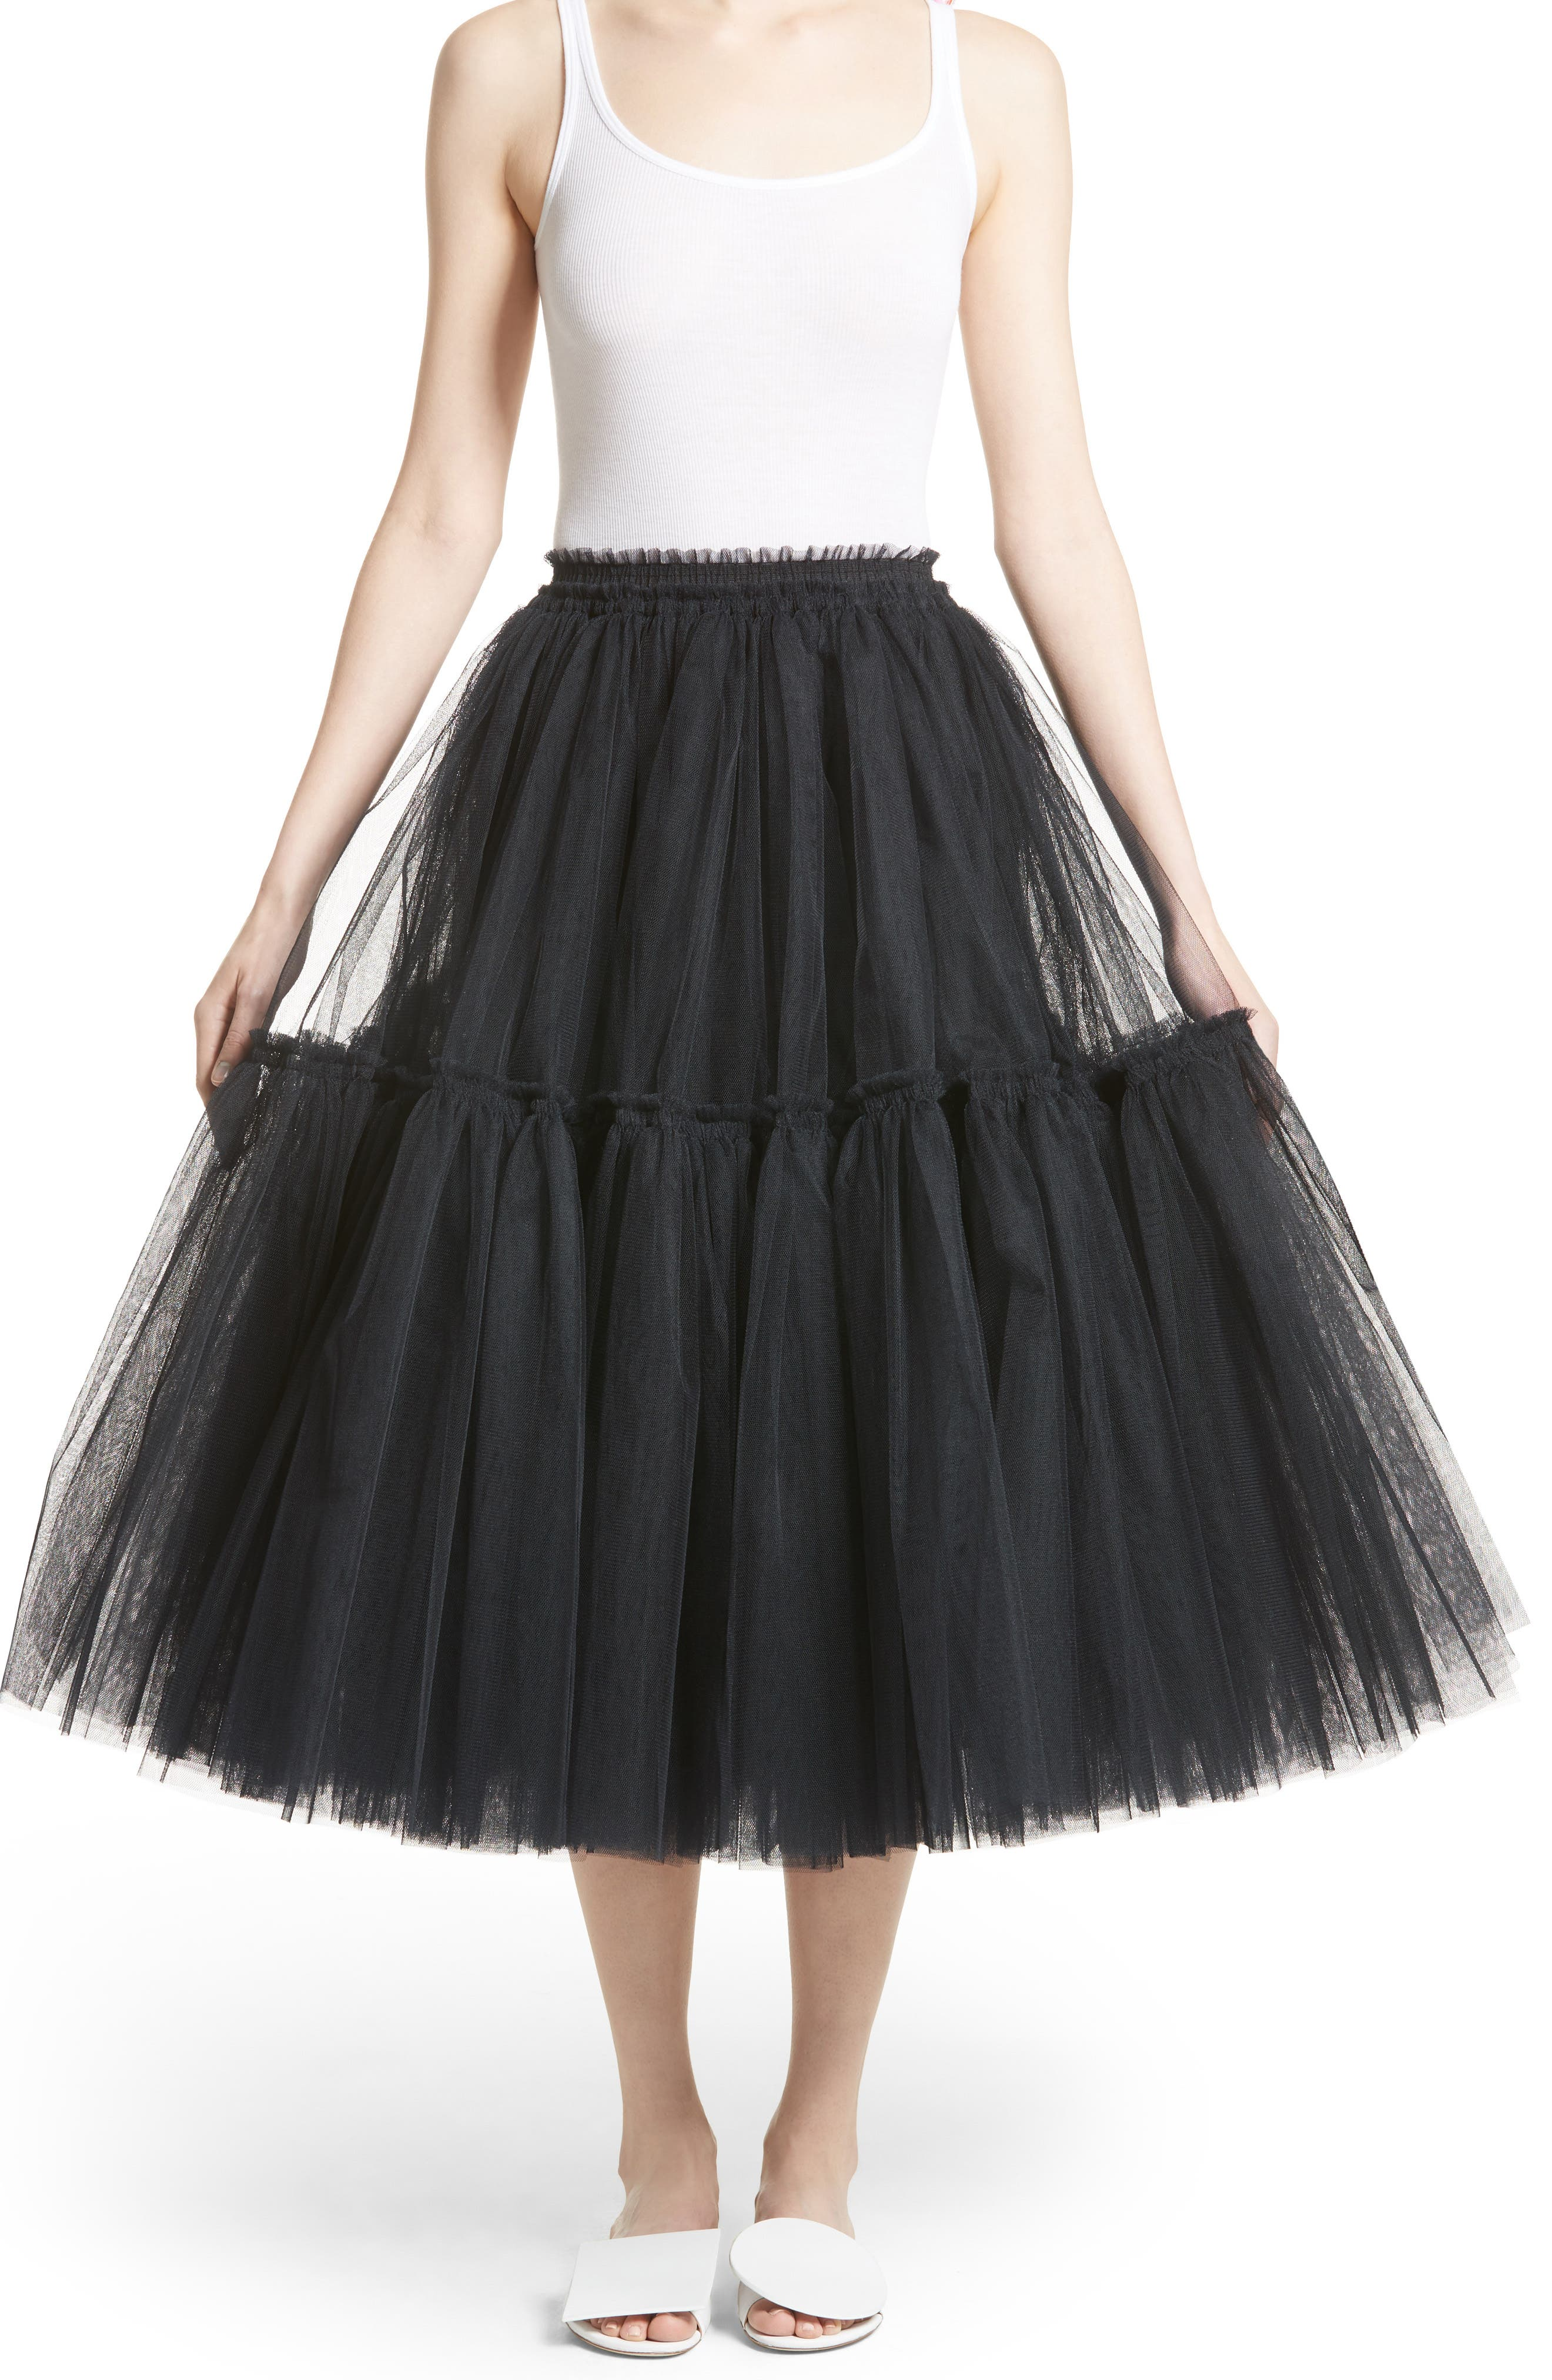 Gathered Tulle Skirt,                         Main,                         color, Black